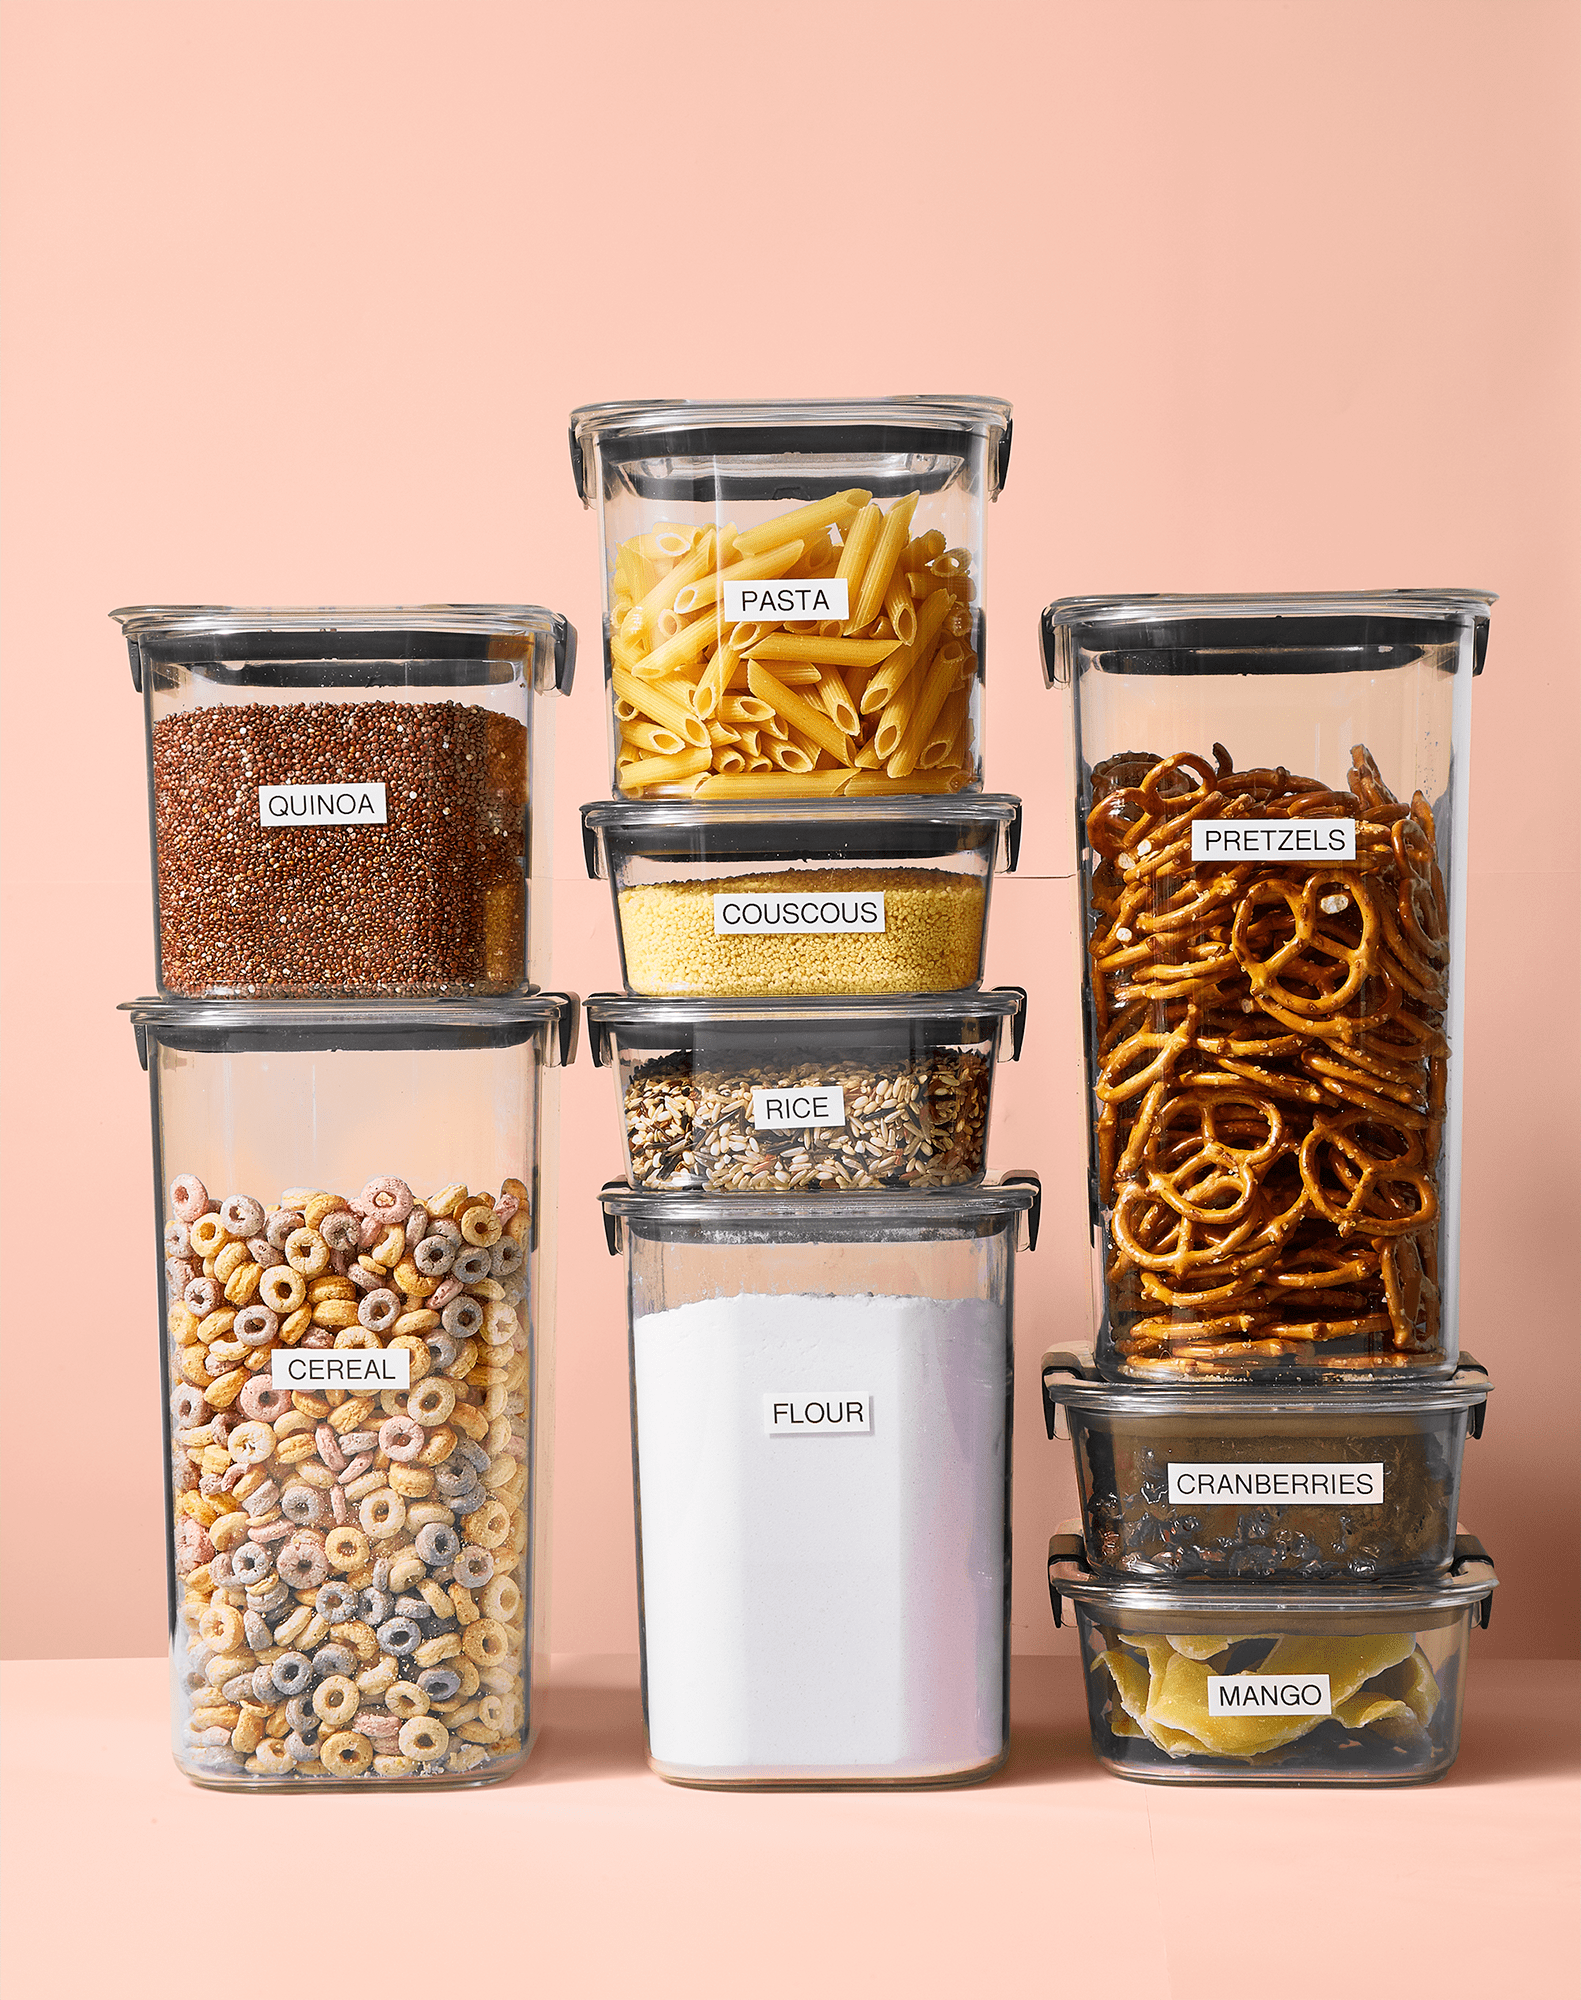 20 Clever Pantry Organization Ideas And Tricks How To Organize A Pantry